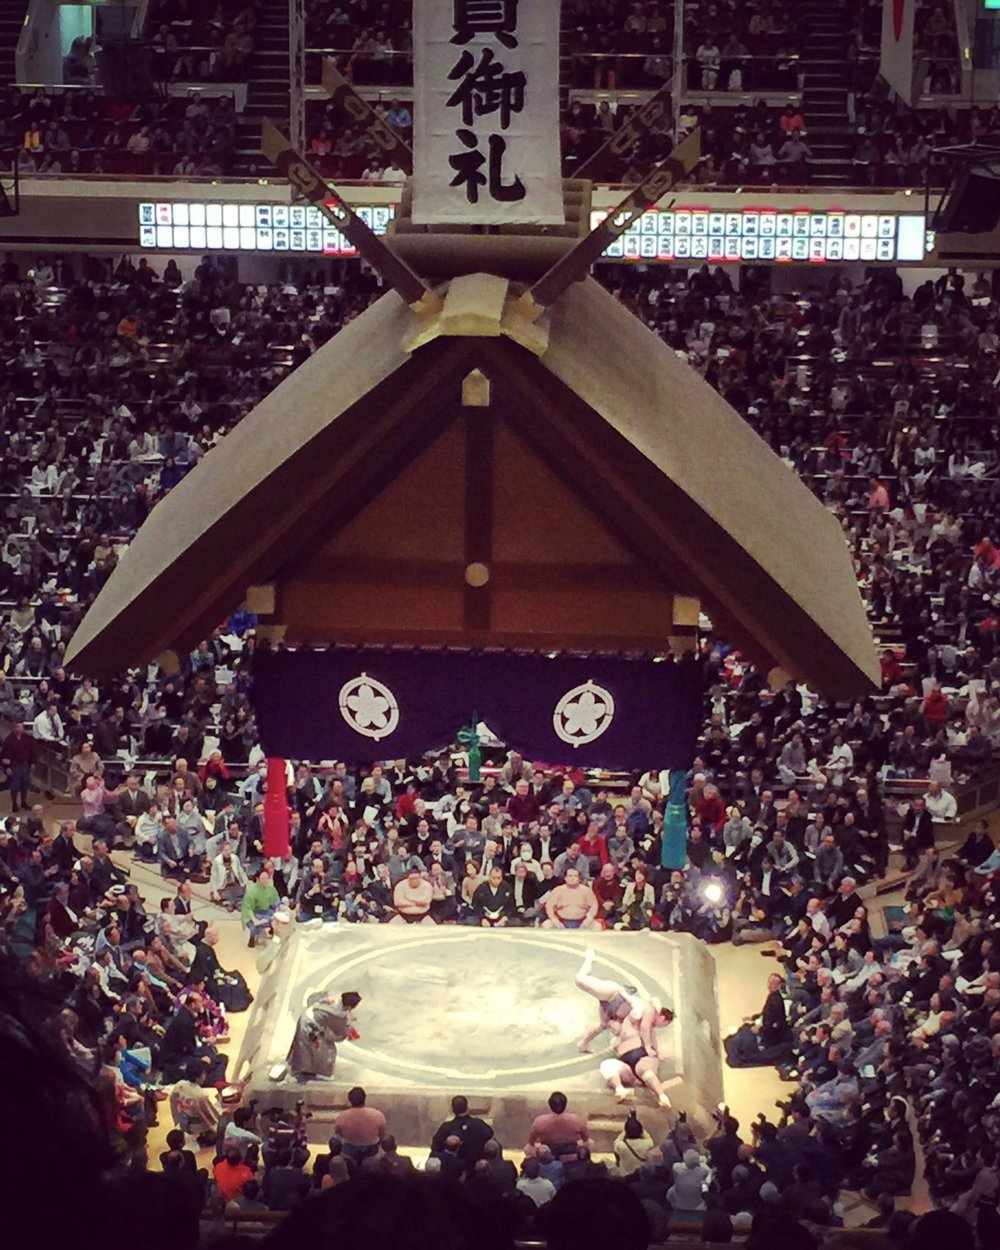 5.sumo wrestling - There are not sumo tournaments year around in Japan, so if you are into Sumo, like we are, make sure to check when the games are. We absolutely love the whole setting of the sport of sumo. And the referees has the best outfits ever, which they change between each match so these sumo games are virtual fashion shows and we love it!